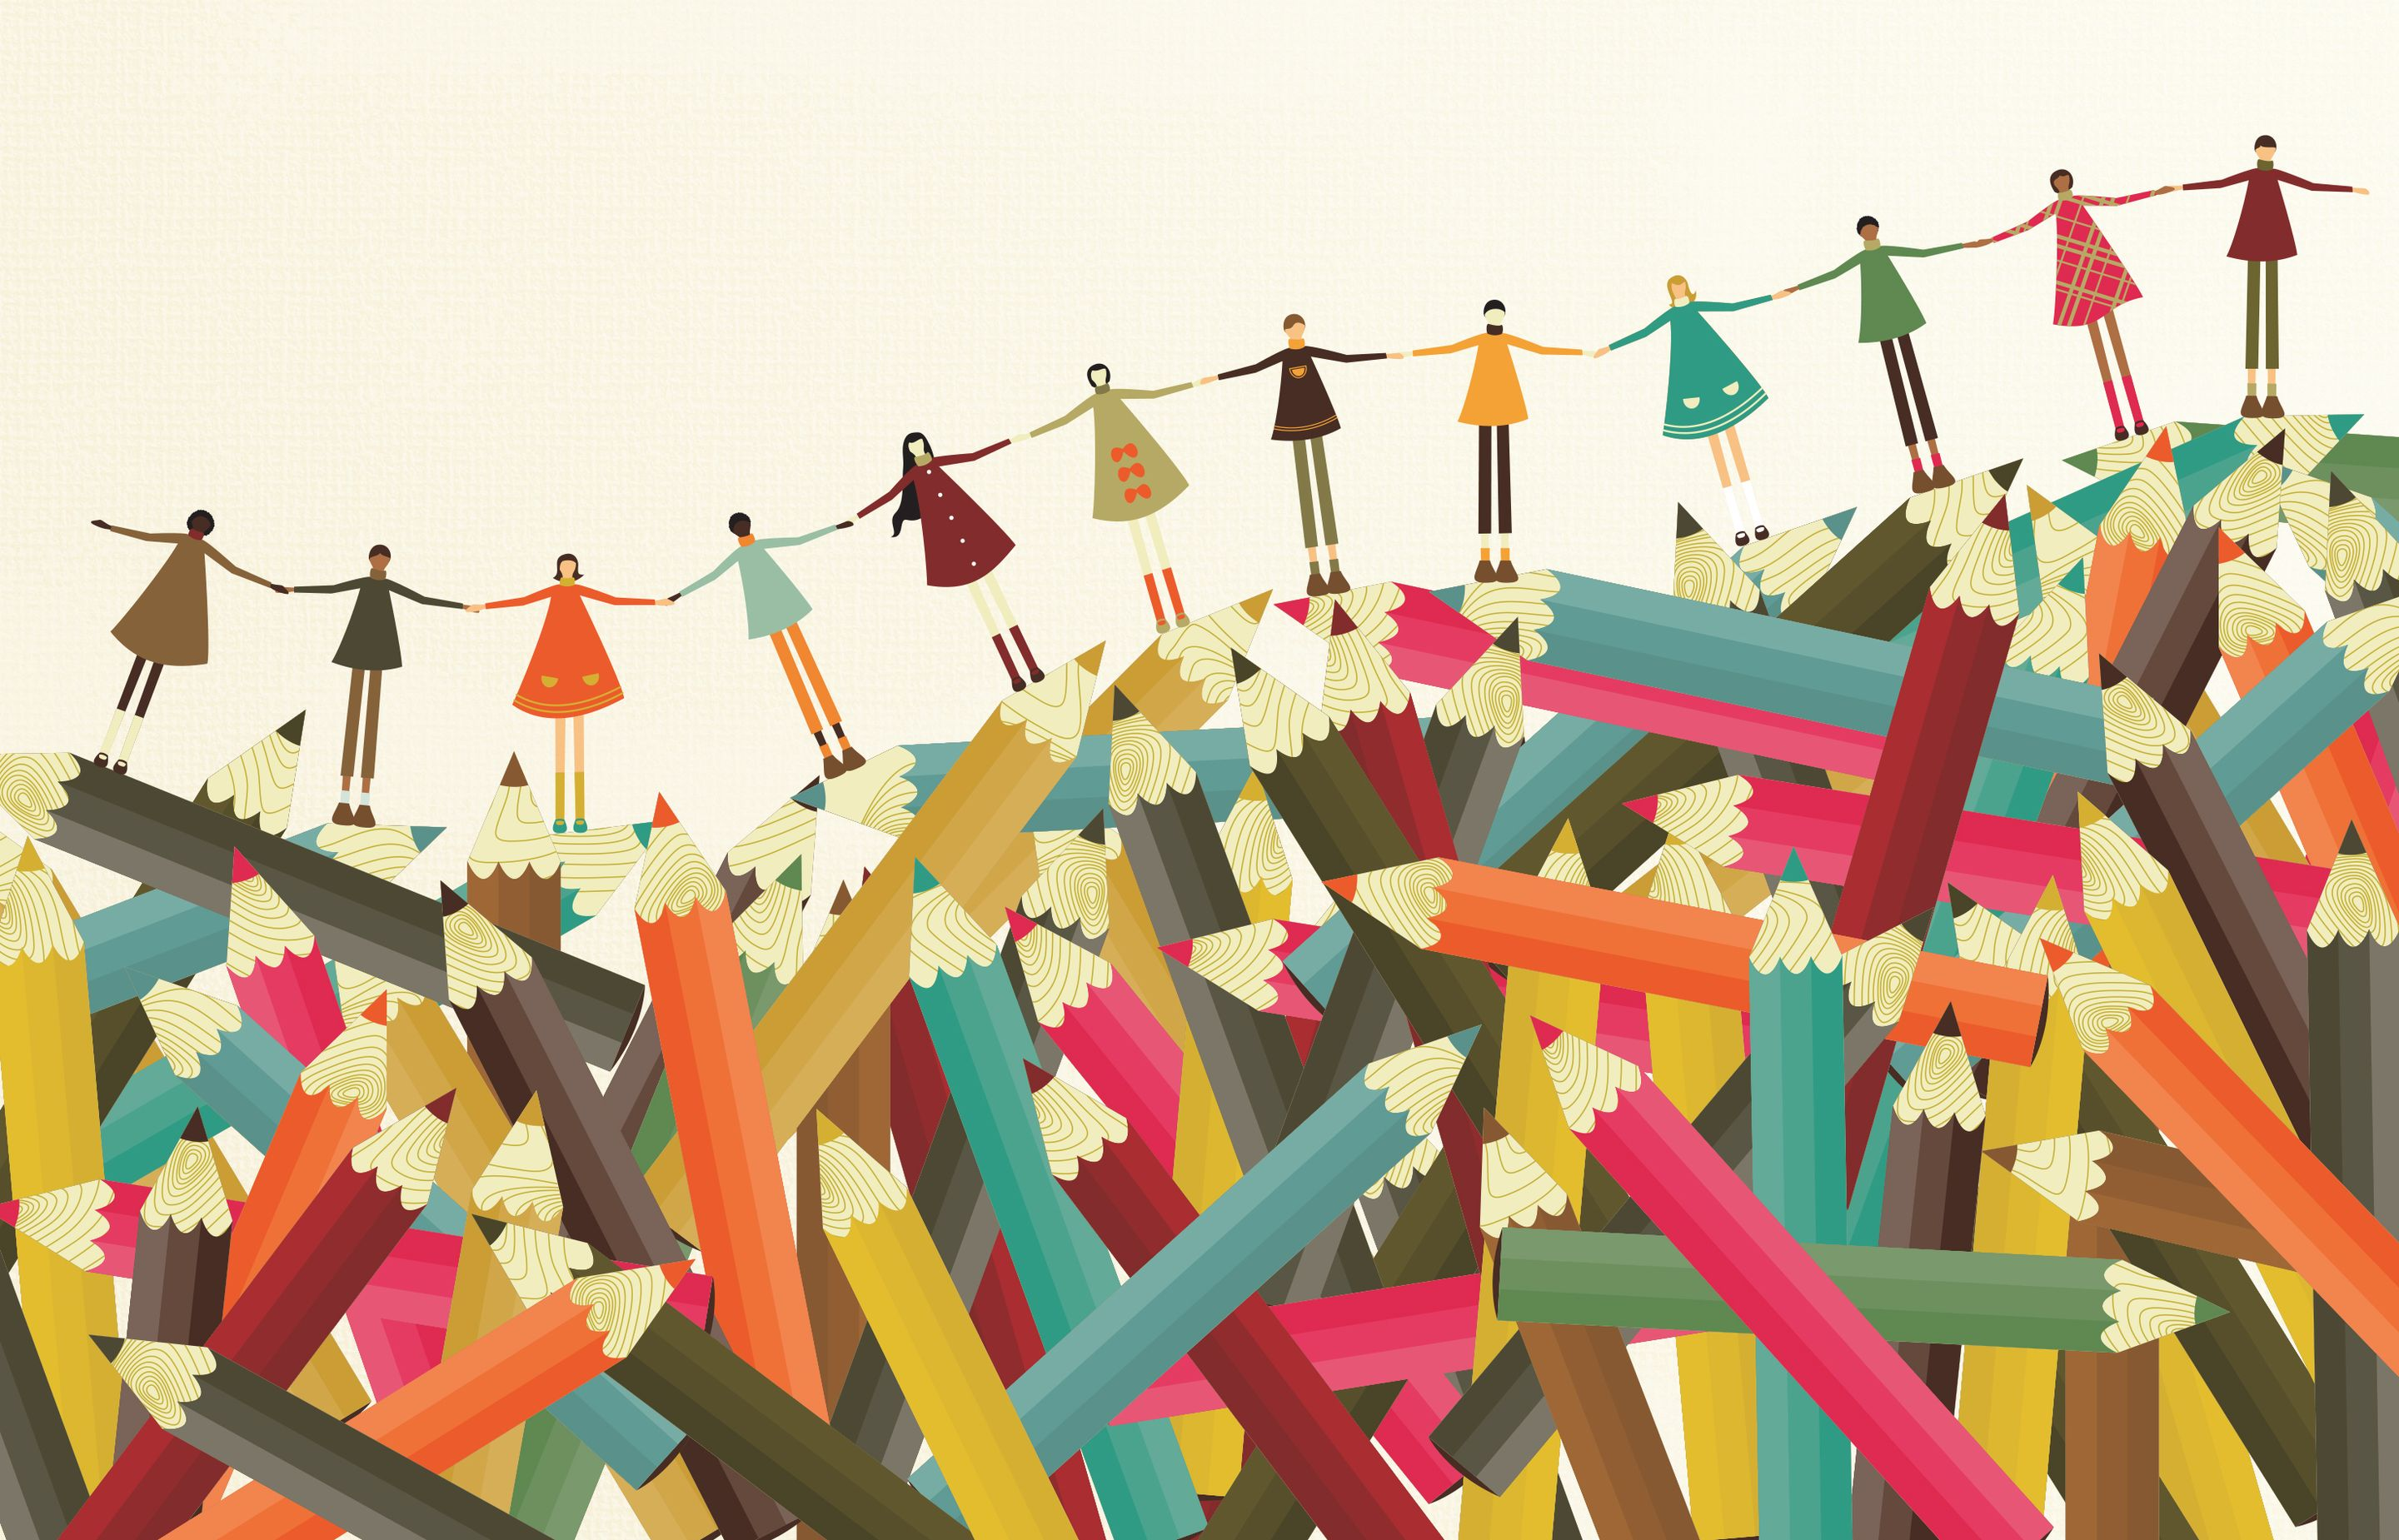 Illustration of students holding hands across a pile of pencils